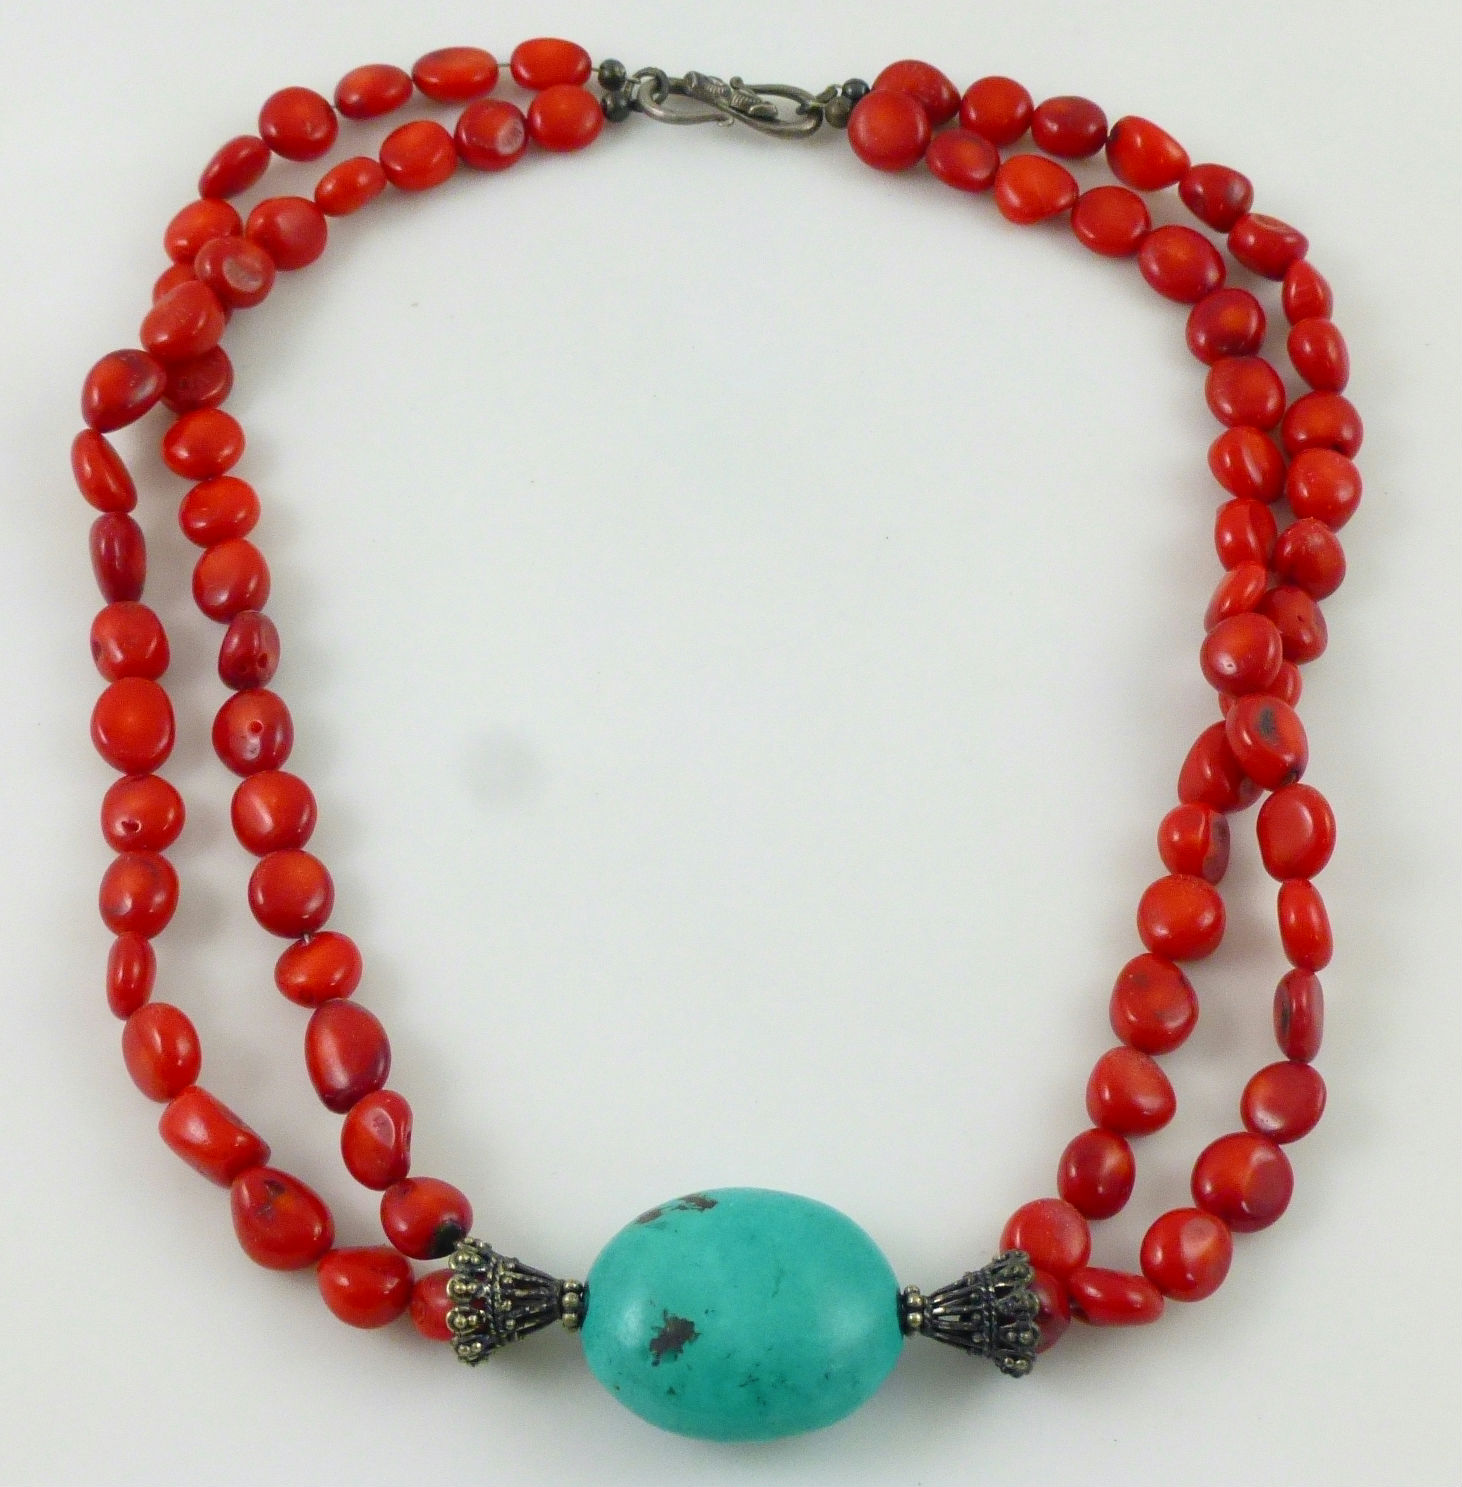 Green turquoise pendant red coral beaded sterling silver necklace ebay green turquoise pendant red coral beaded sterling silver necklace aloadofball Image collections